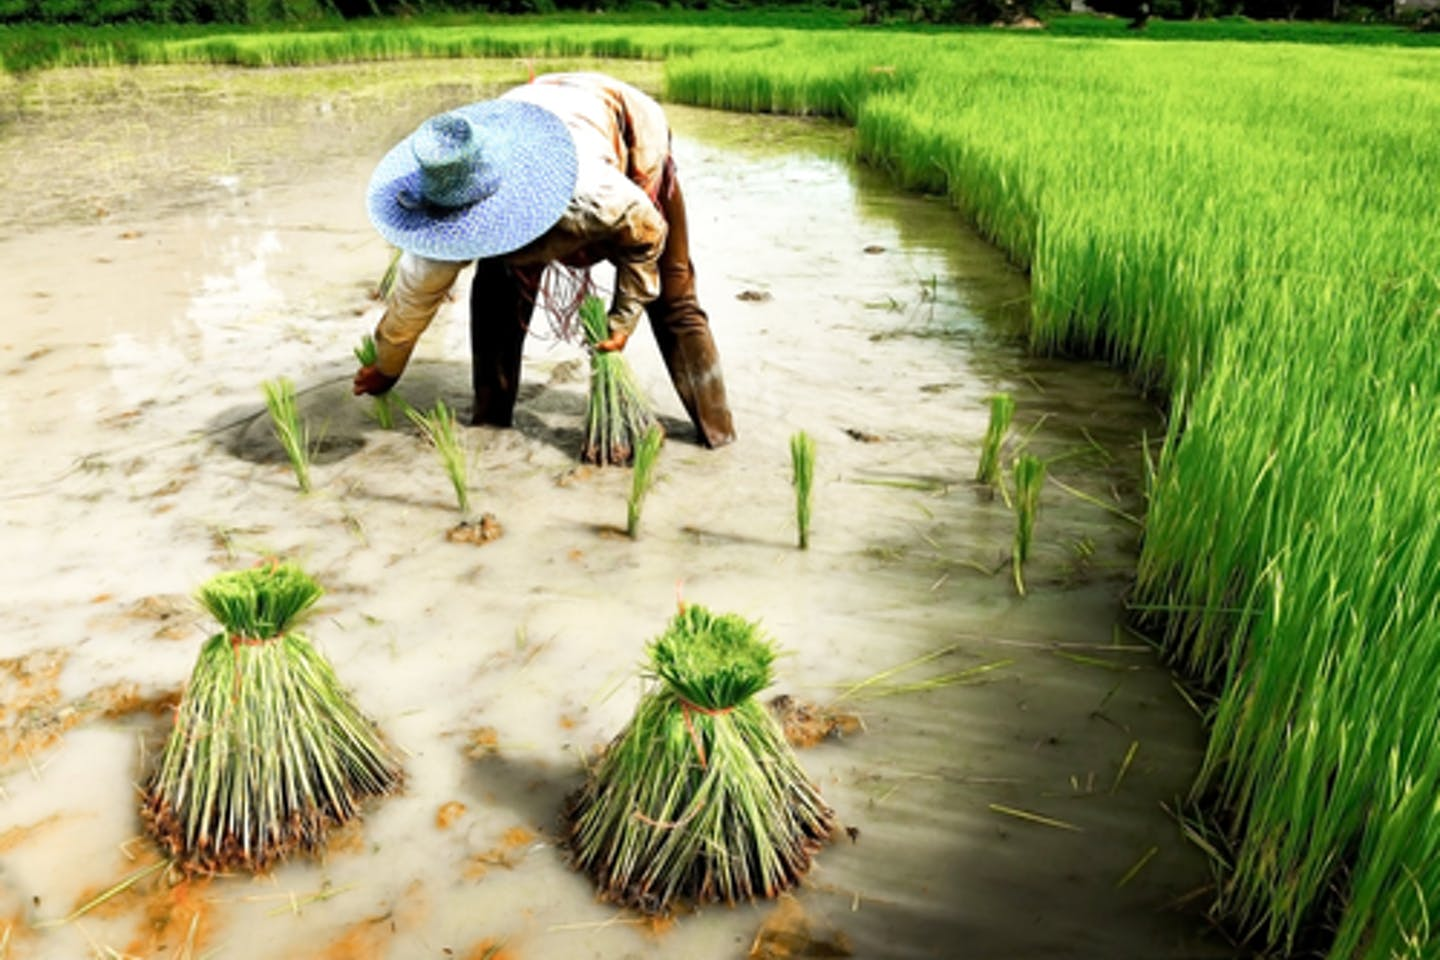 Rice paddy farmer in Thailand